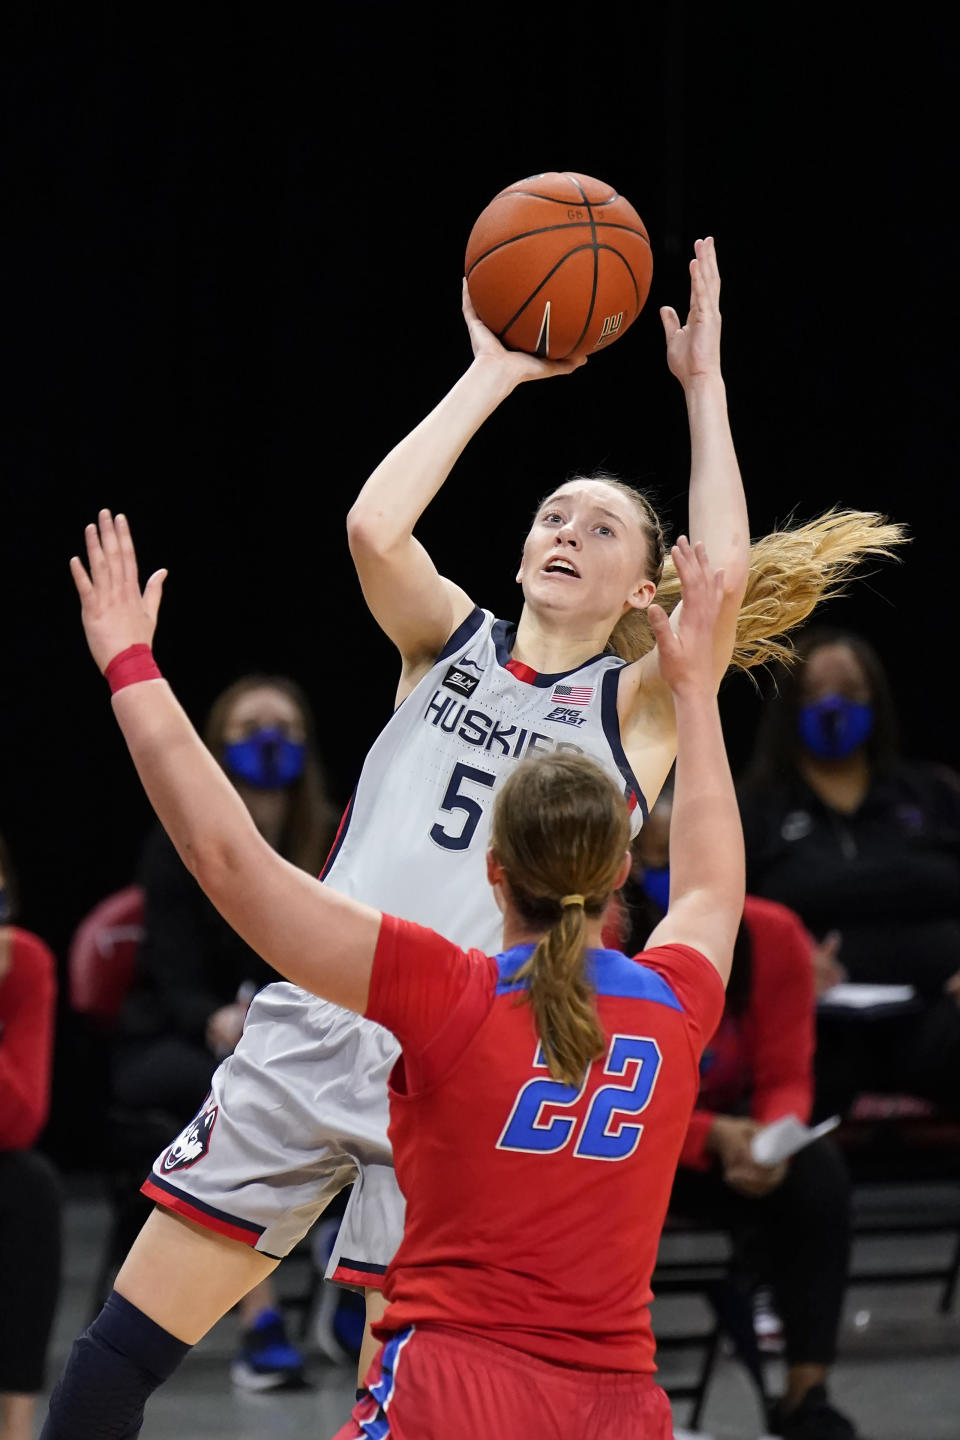 Connecticut's Paige Bueckers (5) shoots over DePaul's Jorie Allen during the first half of an NCAA college basketball game Sunday, Jan. 31, 2021, in Chicago. (AP Photo/Charles Rex Arbogast)